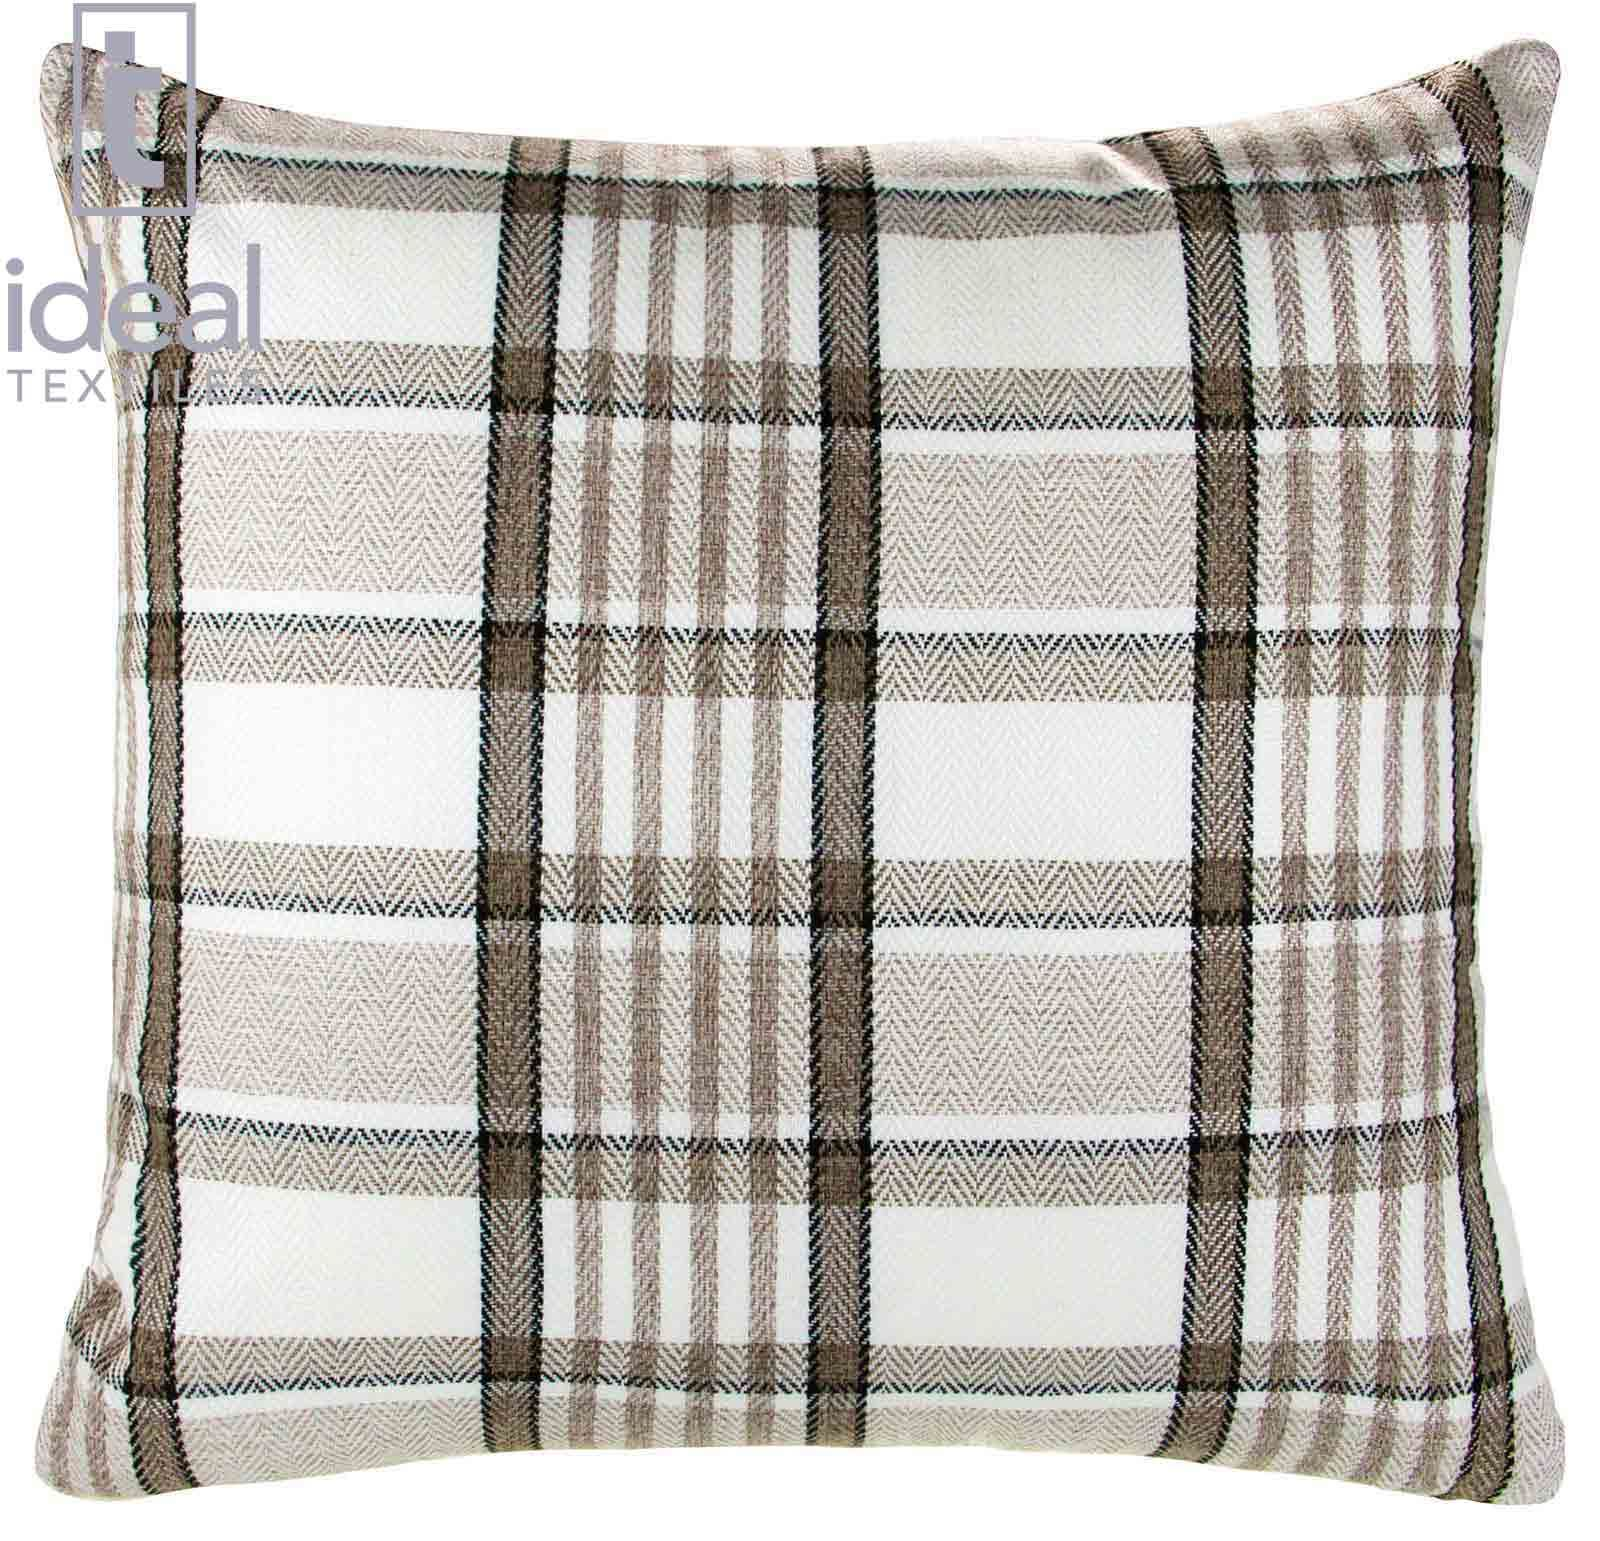 Decorative Plaid Pillows : CARLYLE TARTAN PLAID CHECK CUSHION COVER 18